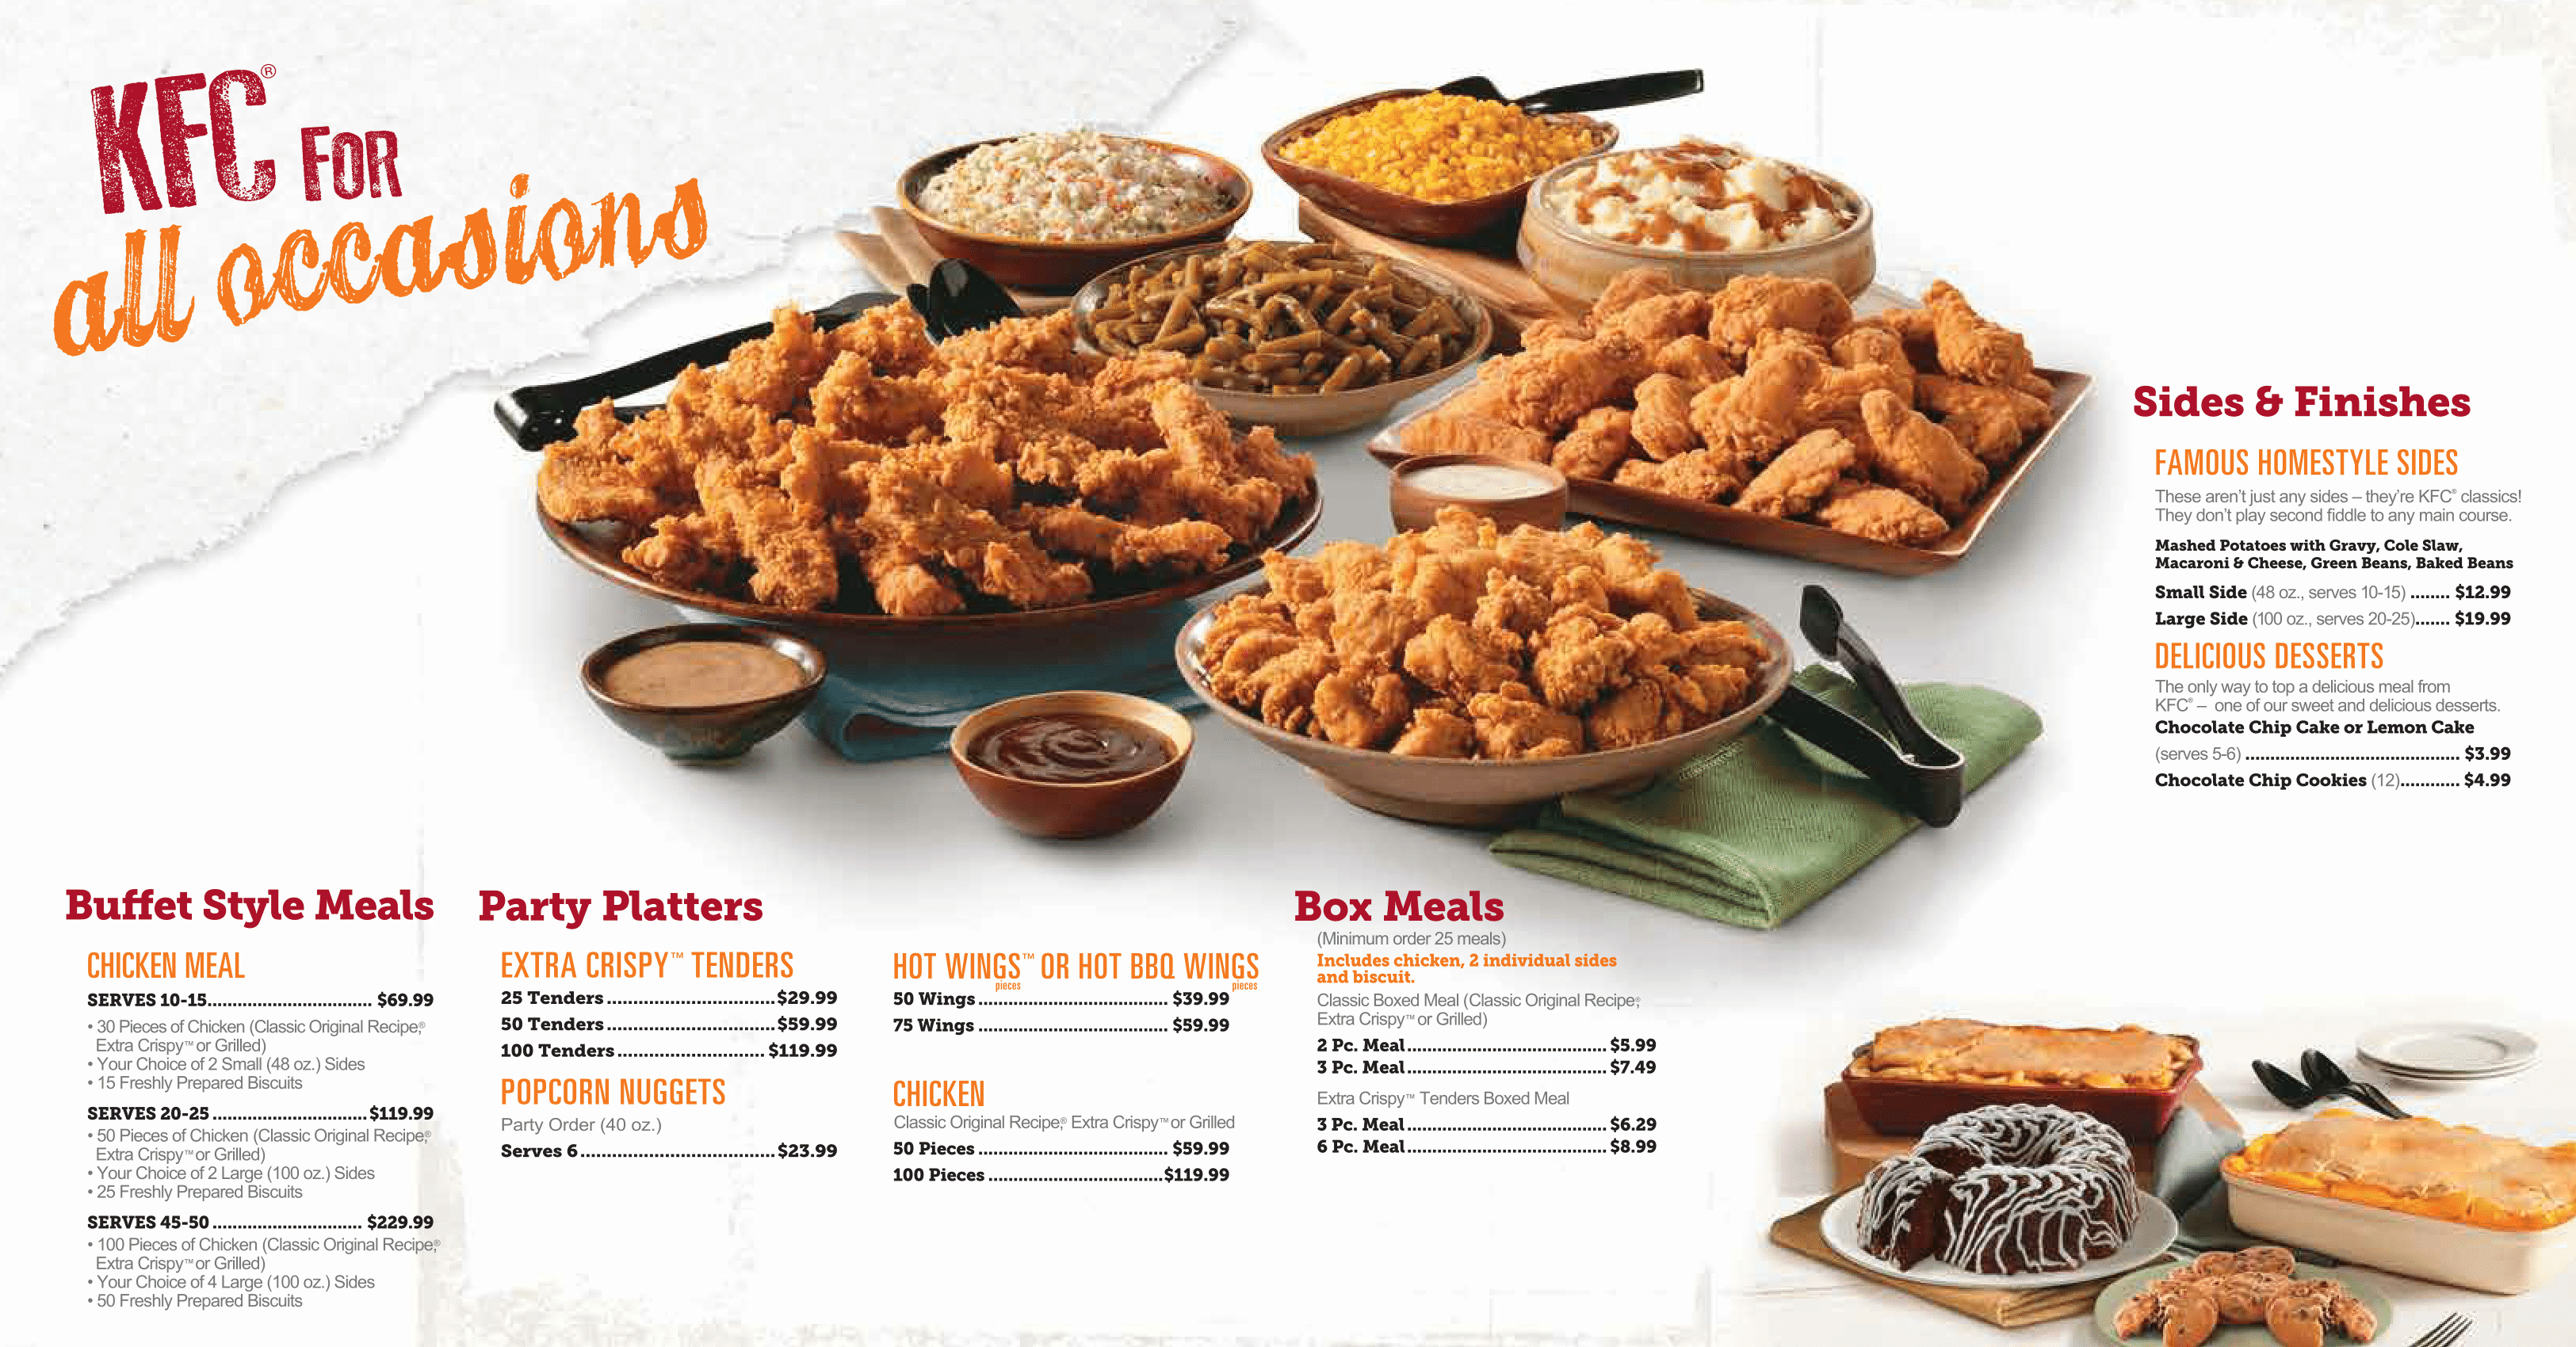 Kfc Catering Menu Prices View Kfc Catering Menu Here